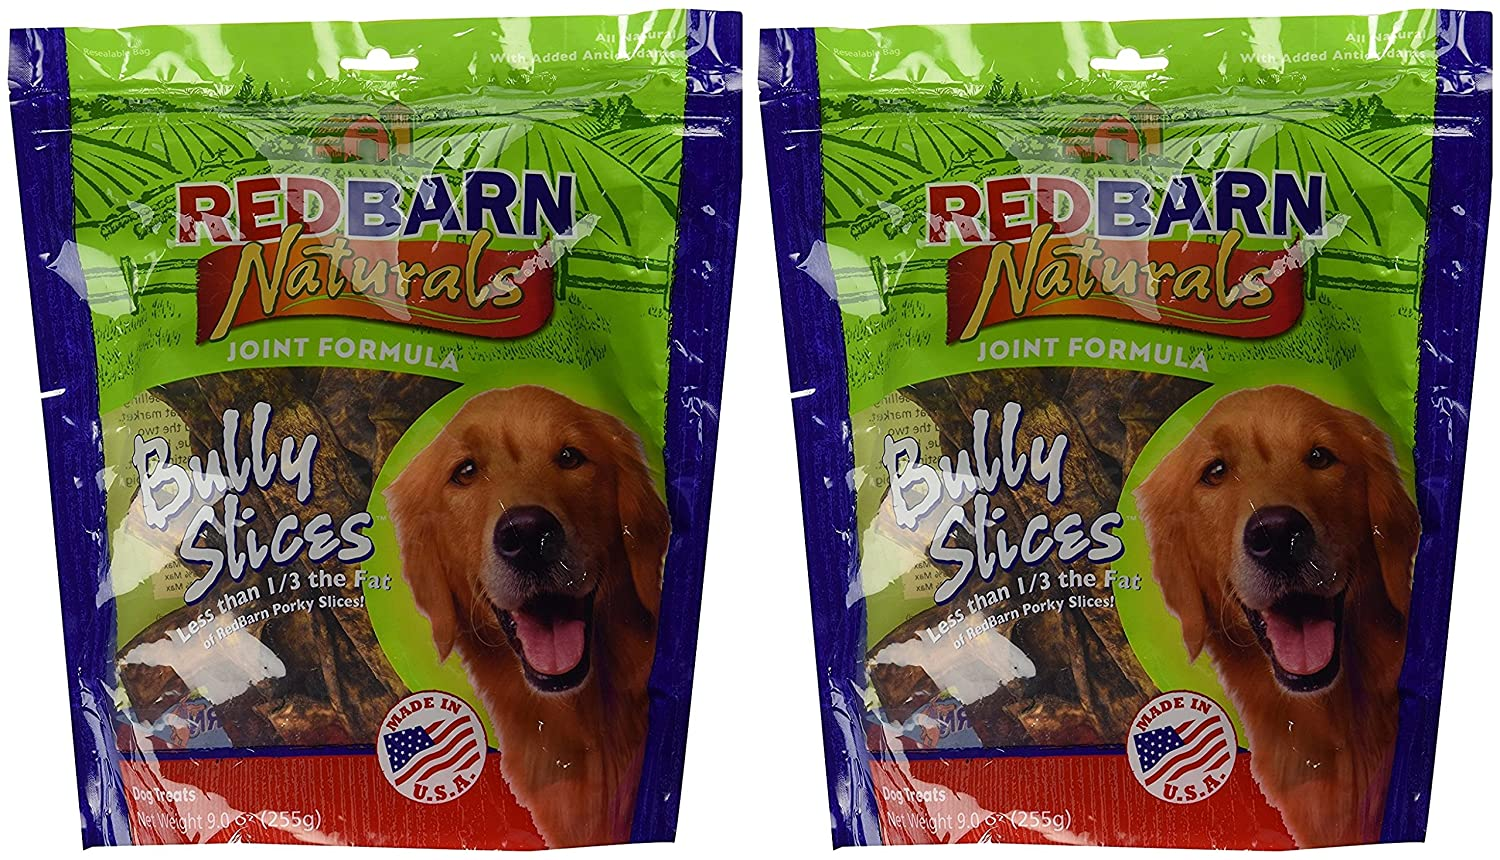 Redbarn Naturals Bully Slices, 9 Ounce Bag, 2 Count